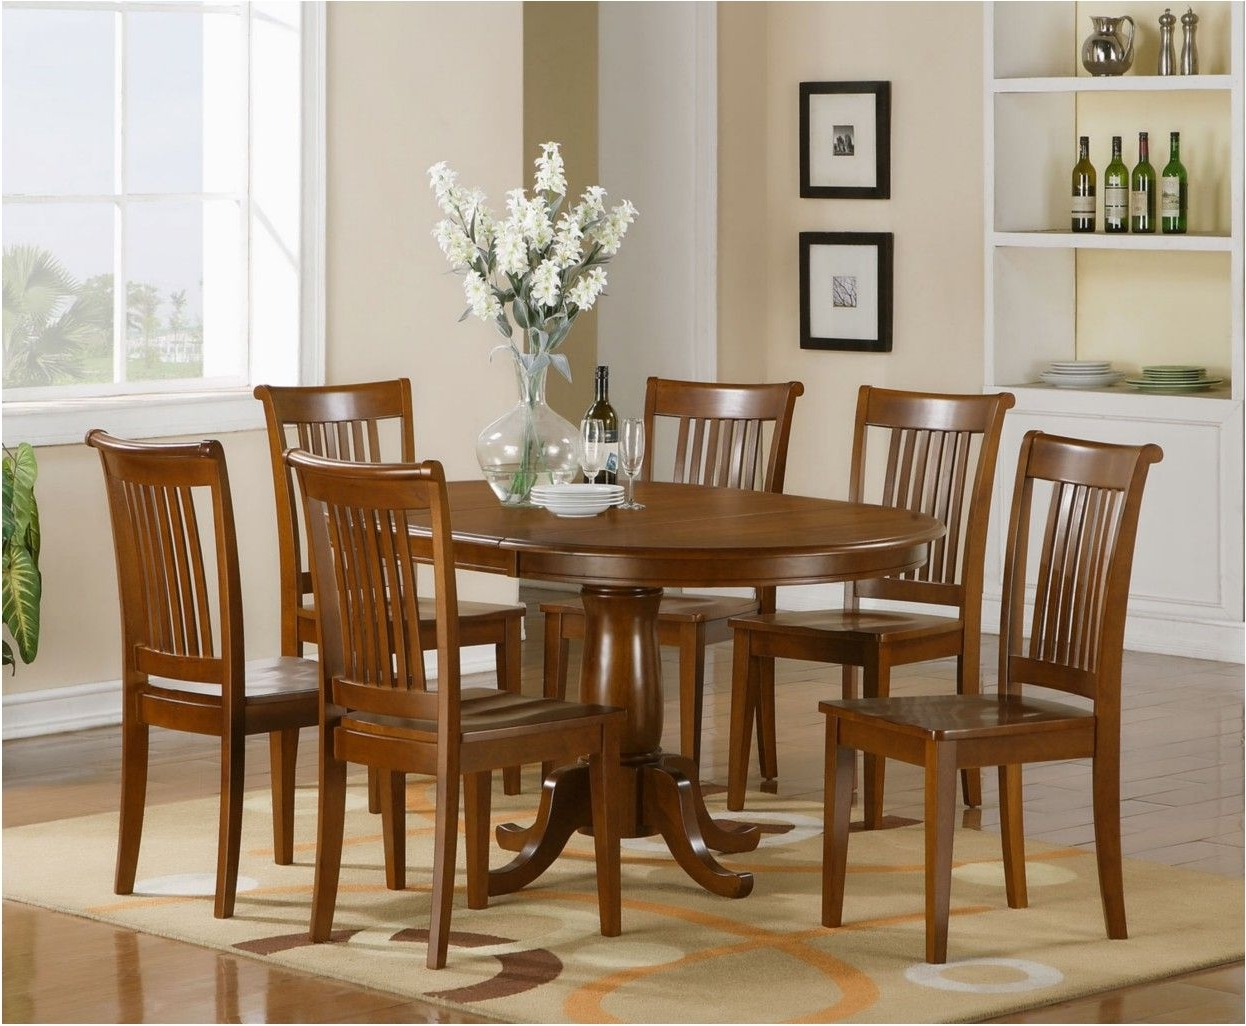 Delightful Dining Room Chair Sets 6 Dining Room Decor Ideas And Throughout Popular Dining Table Sets With 6 Chairs (View 7 of 25)